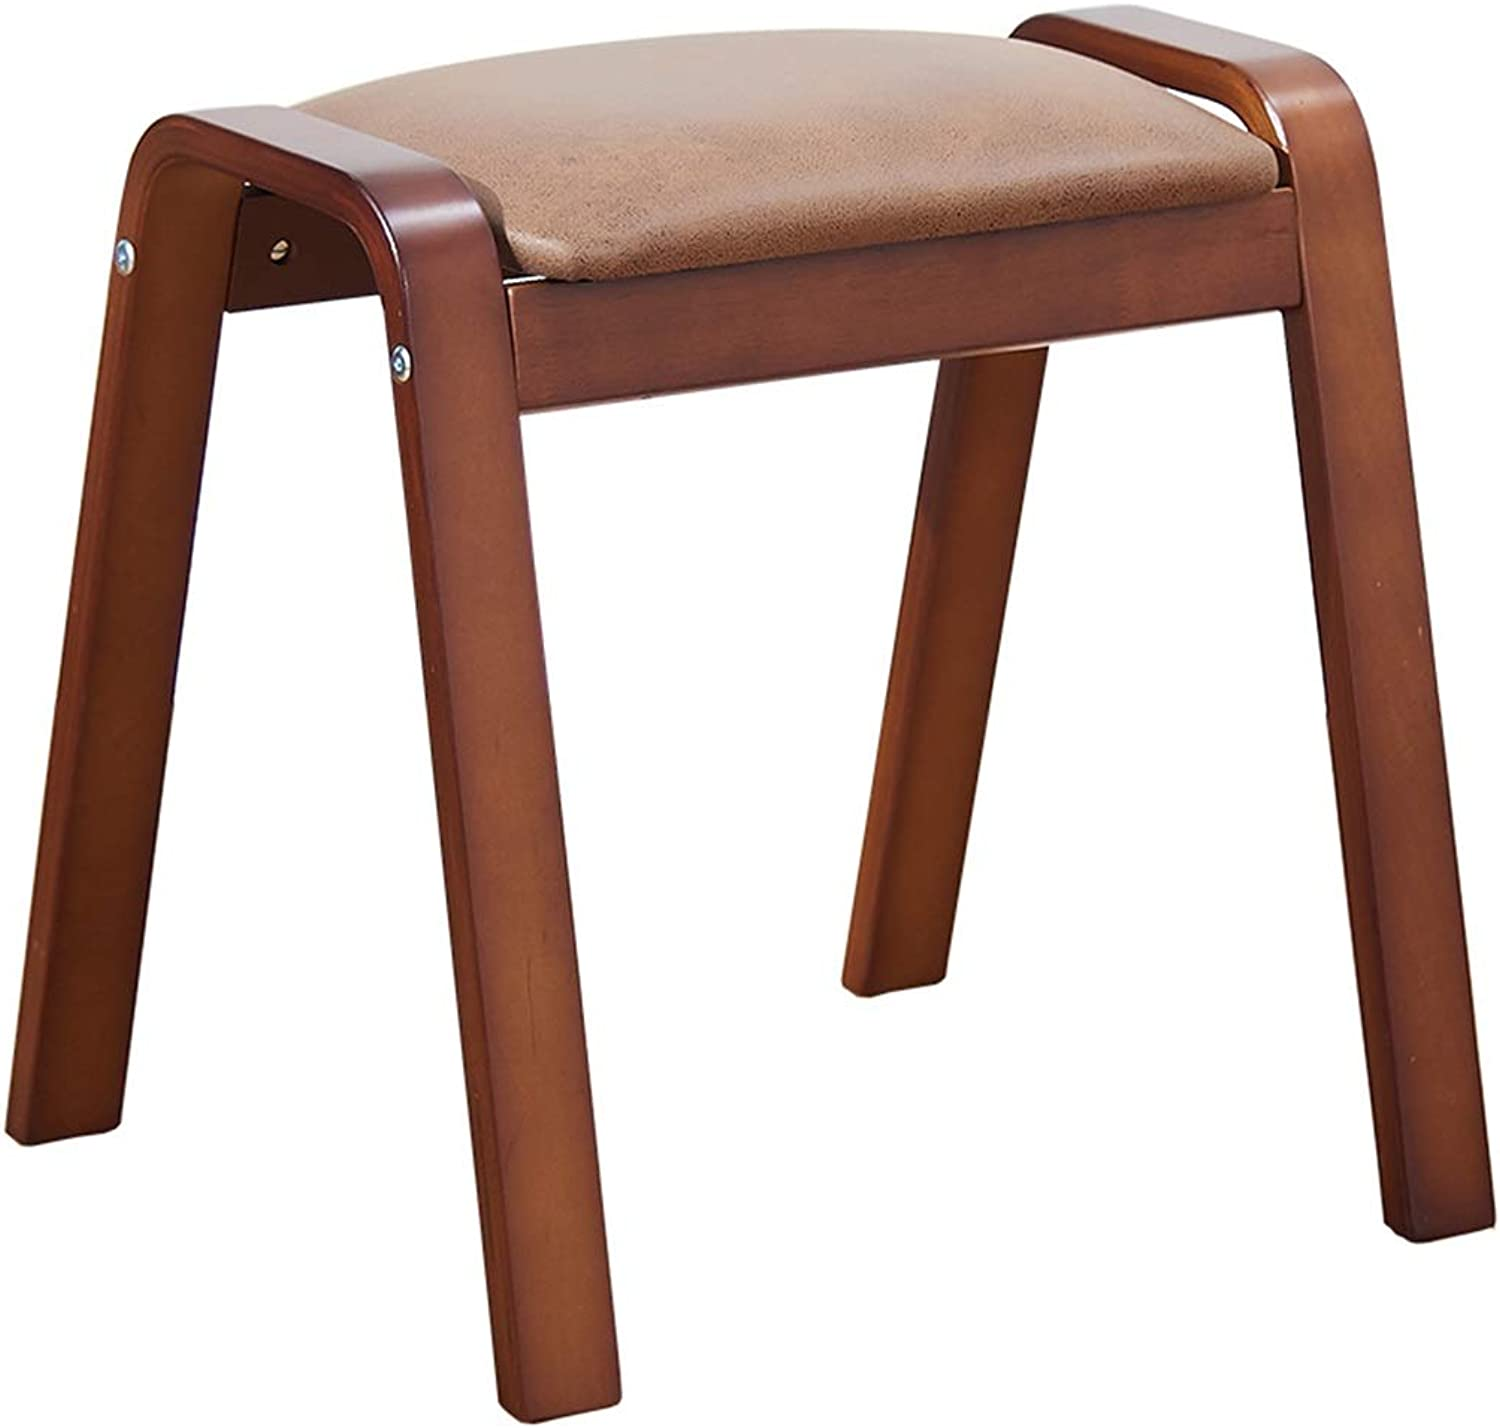 Household stools, Dressing stools, Adult Dining Tables and stools, Solid Wood for shoes and stools.